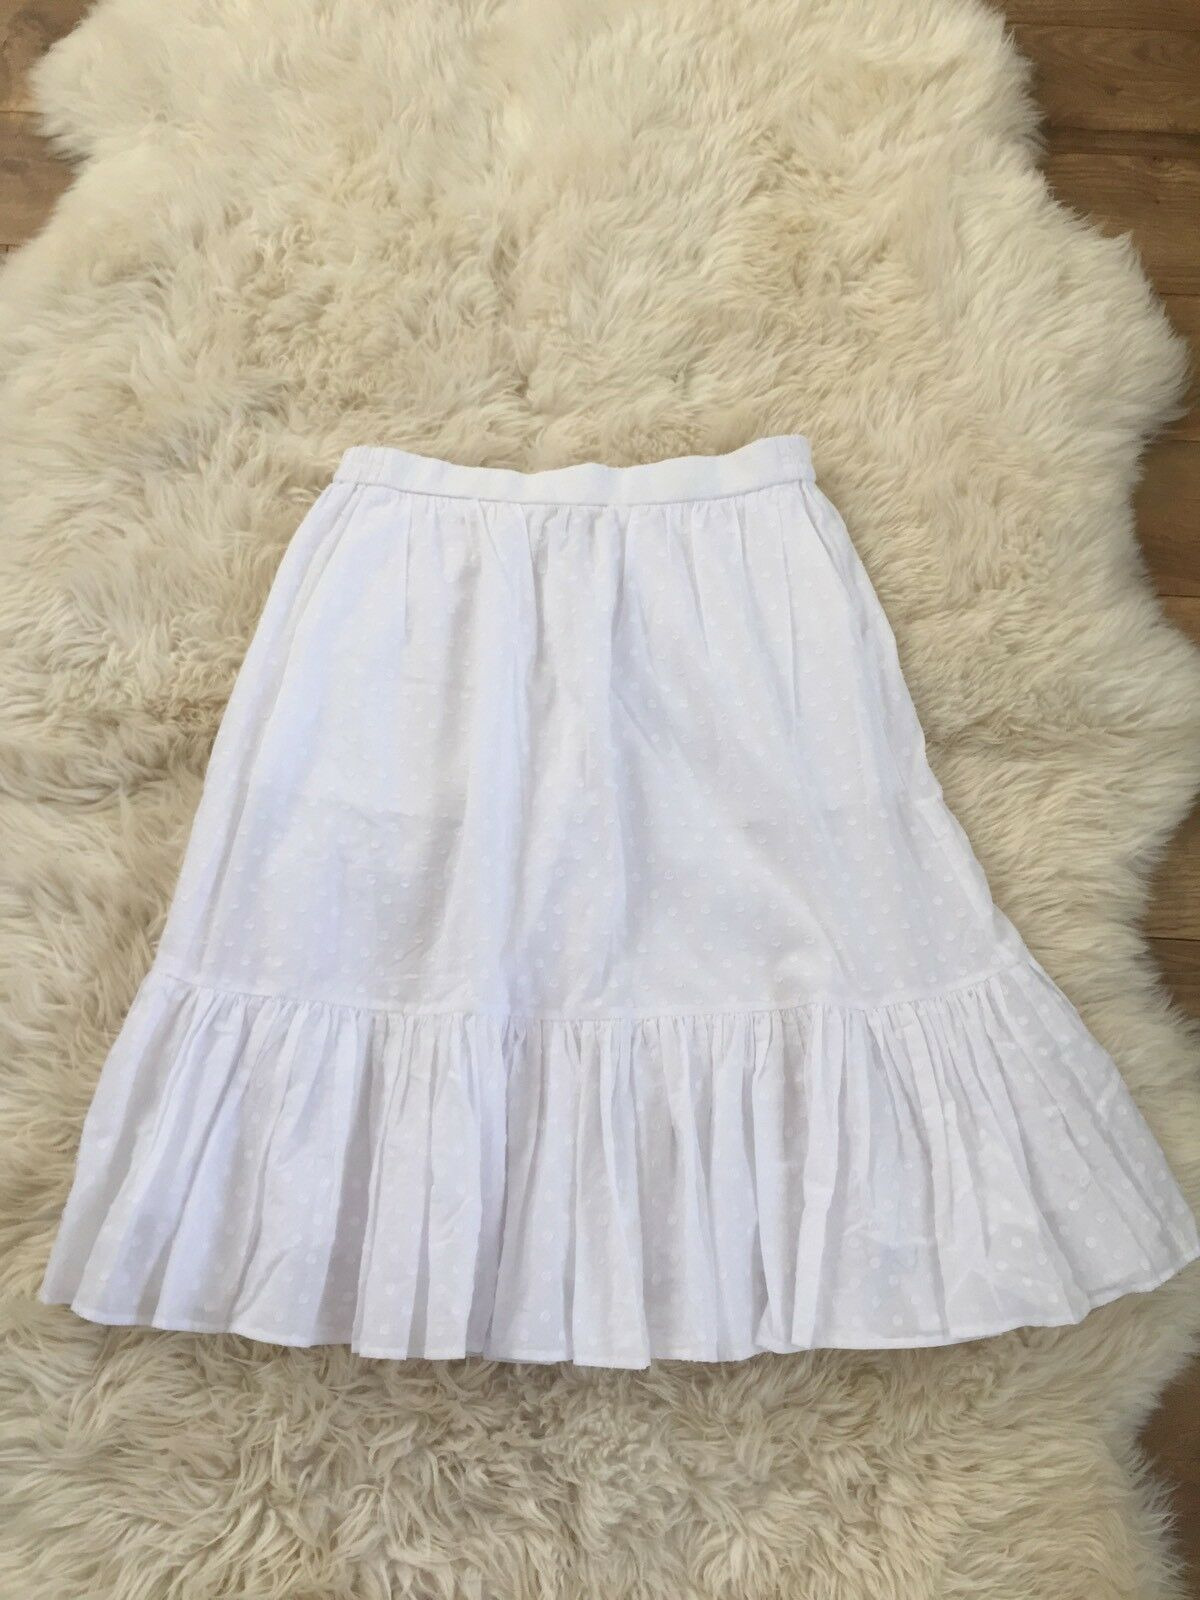 New JCrew Clip-Dot Tiered Skirt Sz 14 16 White G3808 SUMMER 2017